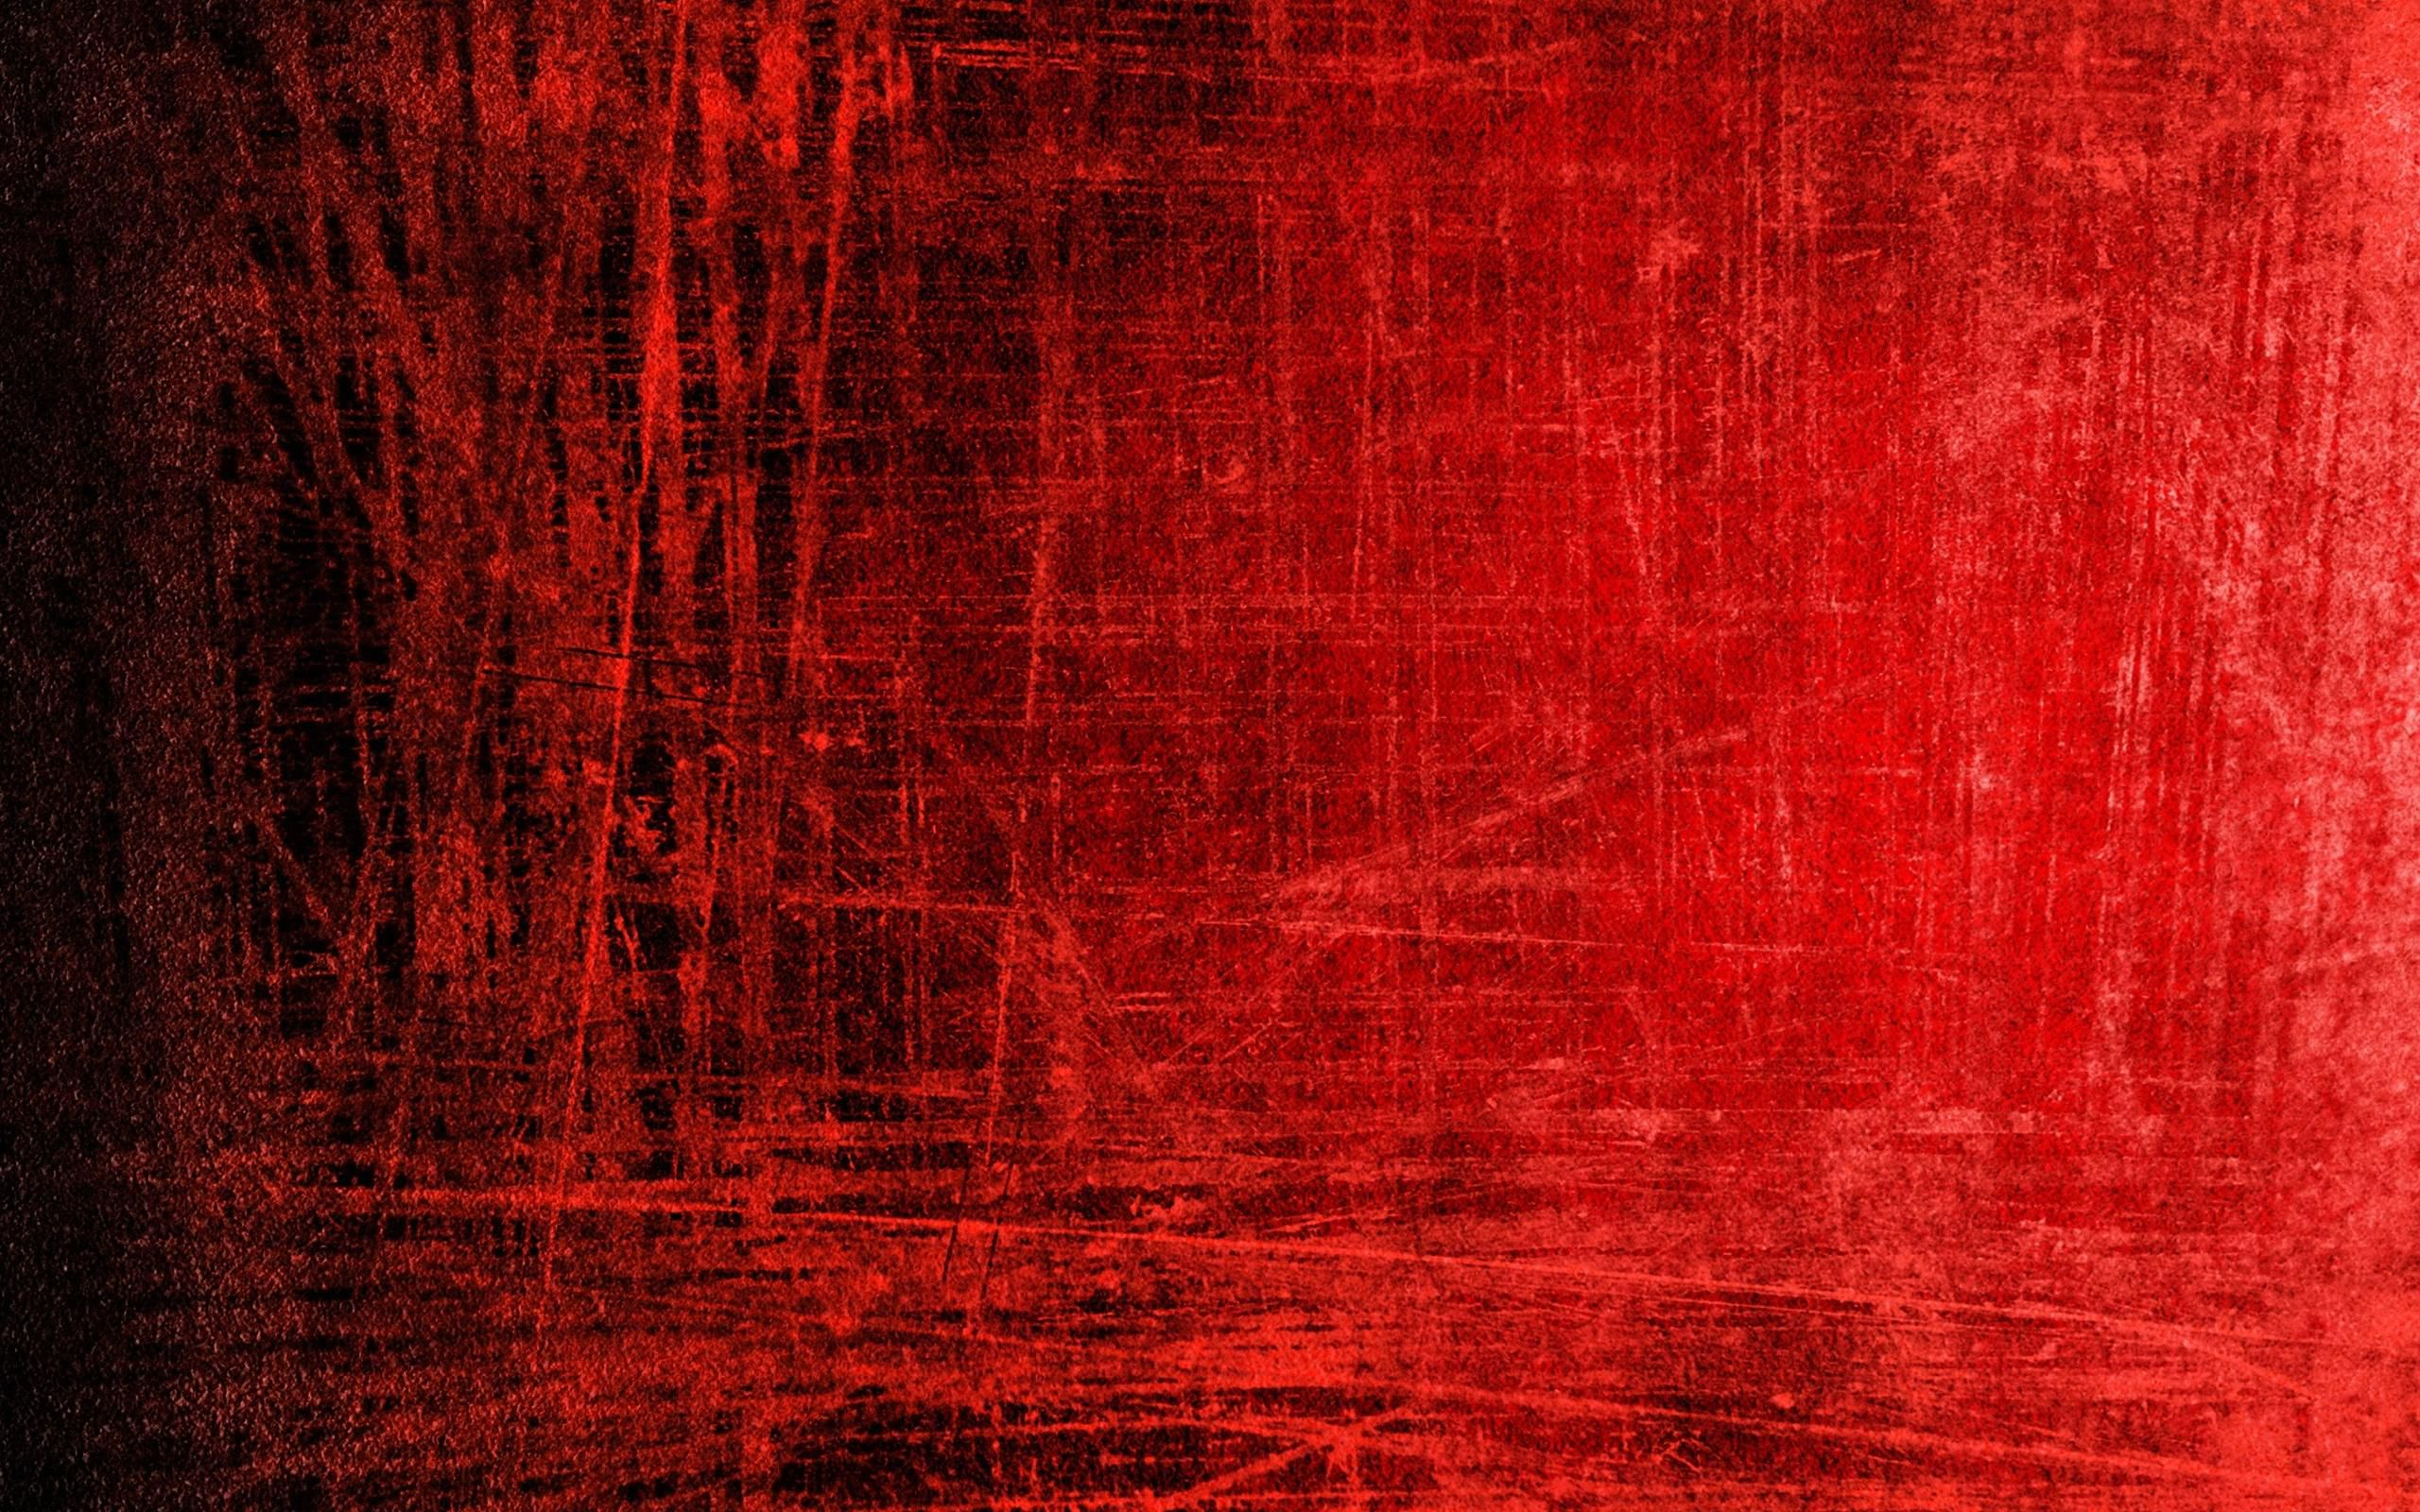 Red Background in Scratches.jpg